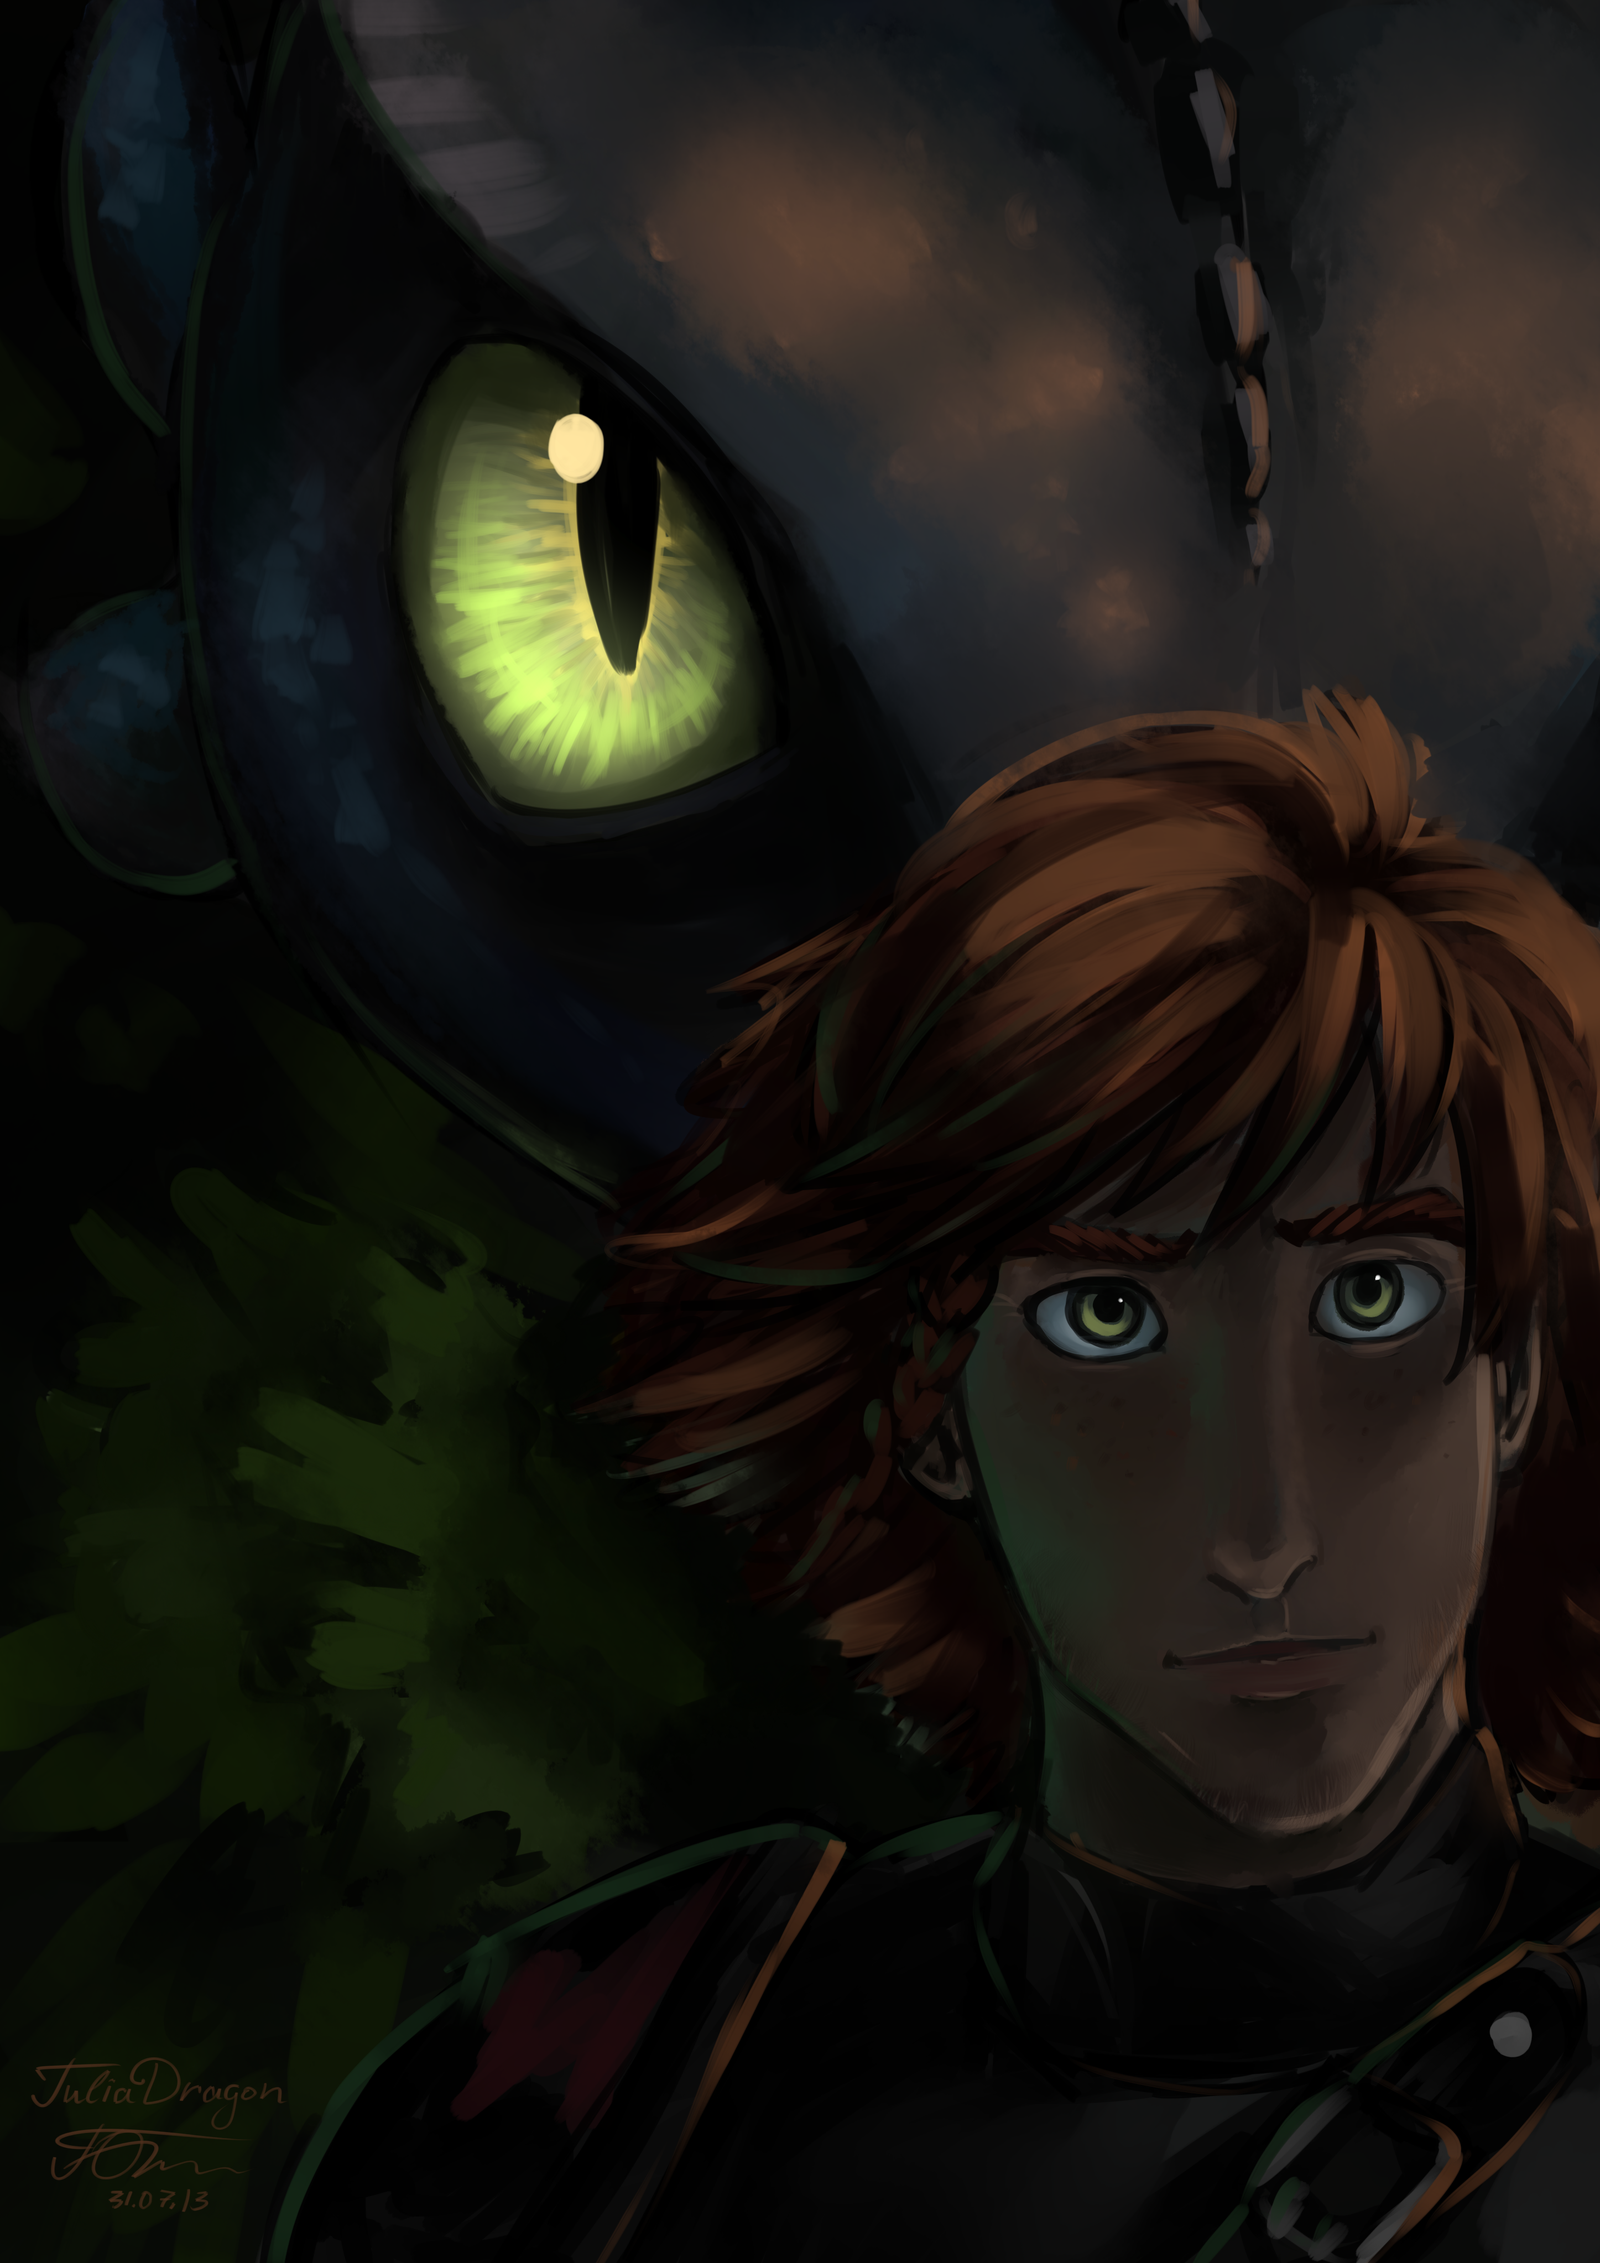 HTTYD2 Awesome art piece! Toothless seems to be invincible and like a warrior, Hiccup seems more like he'll talk first then fight.